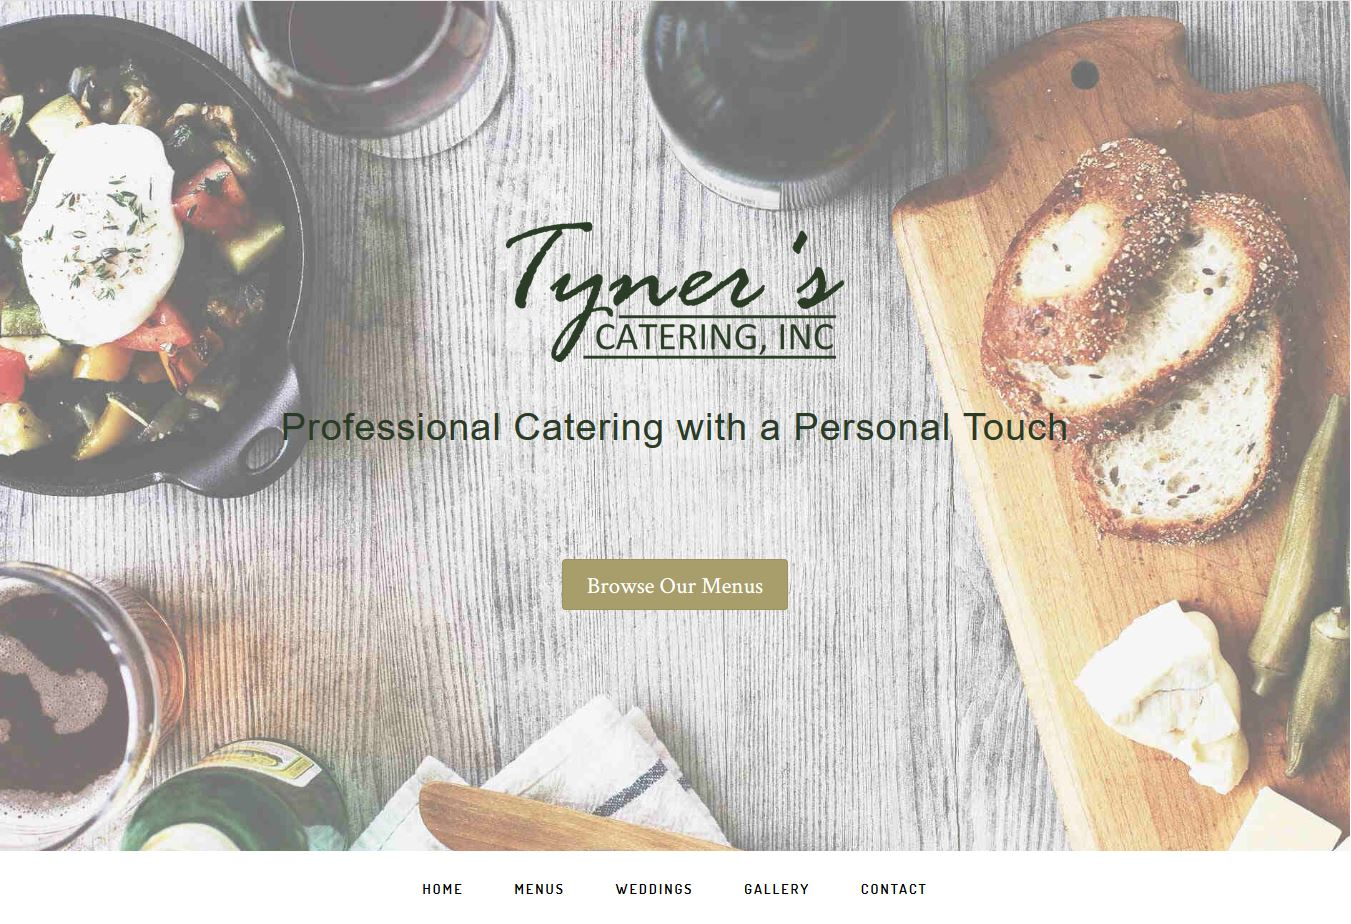 tynerscatering.com